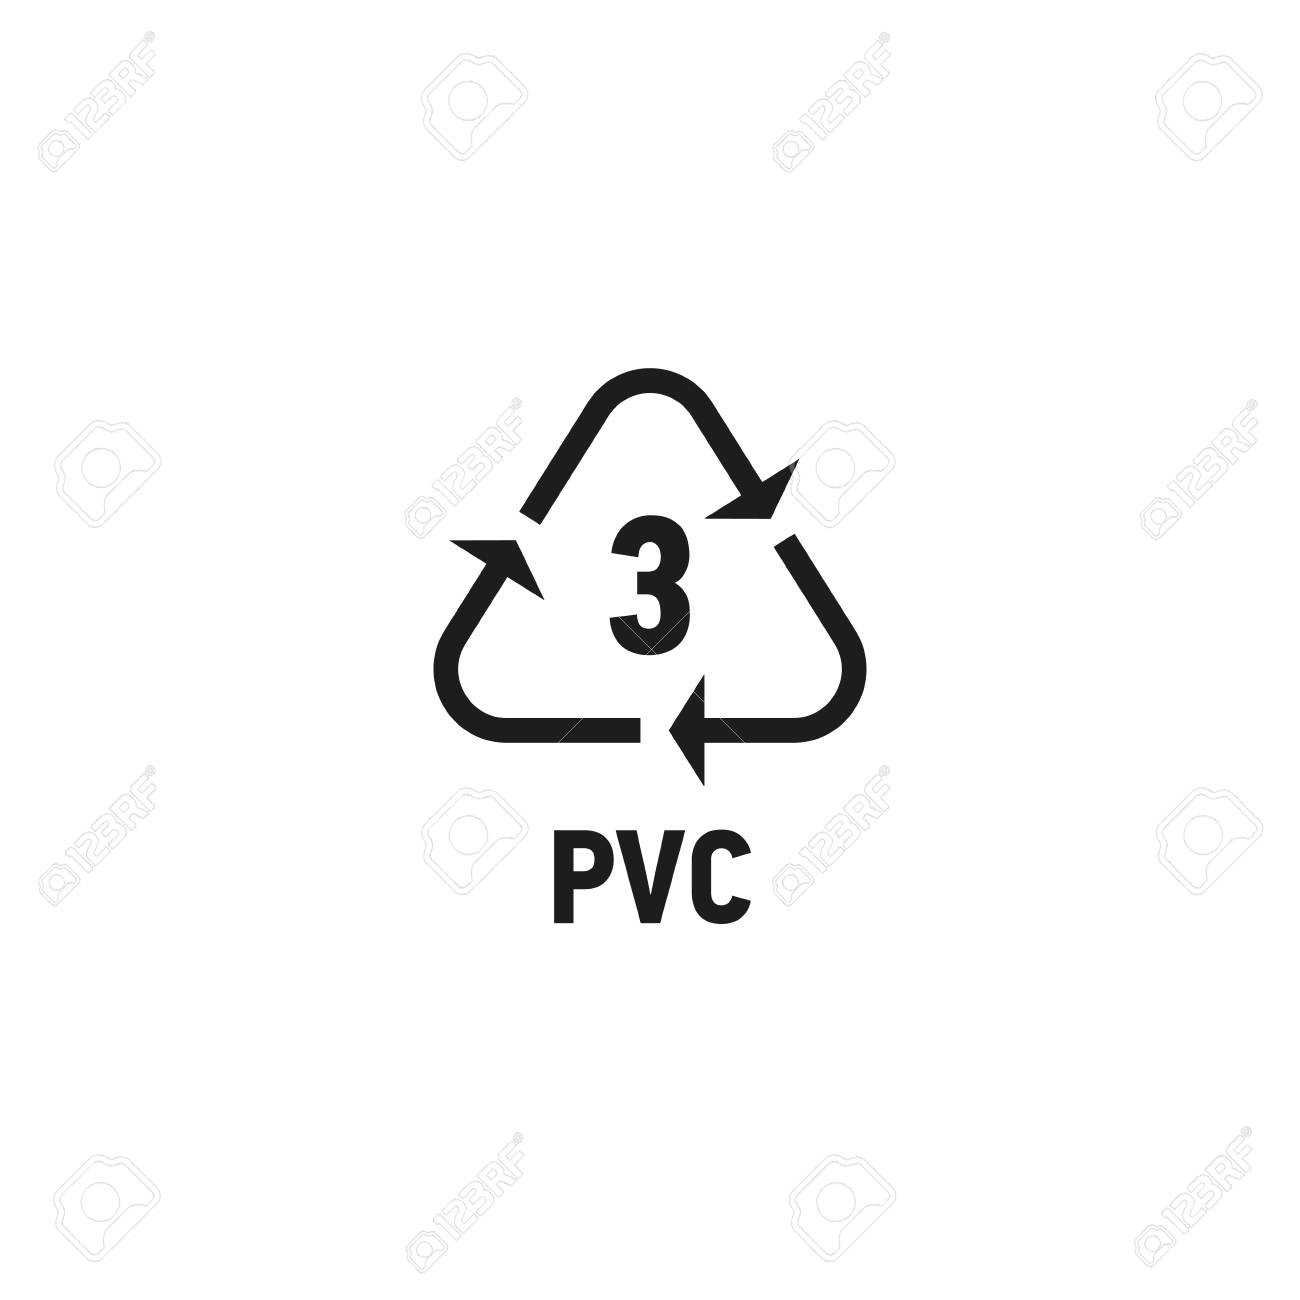 Plastic Recycling Symbol Isolated On White Royalty Free Cliparts